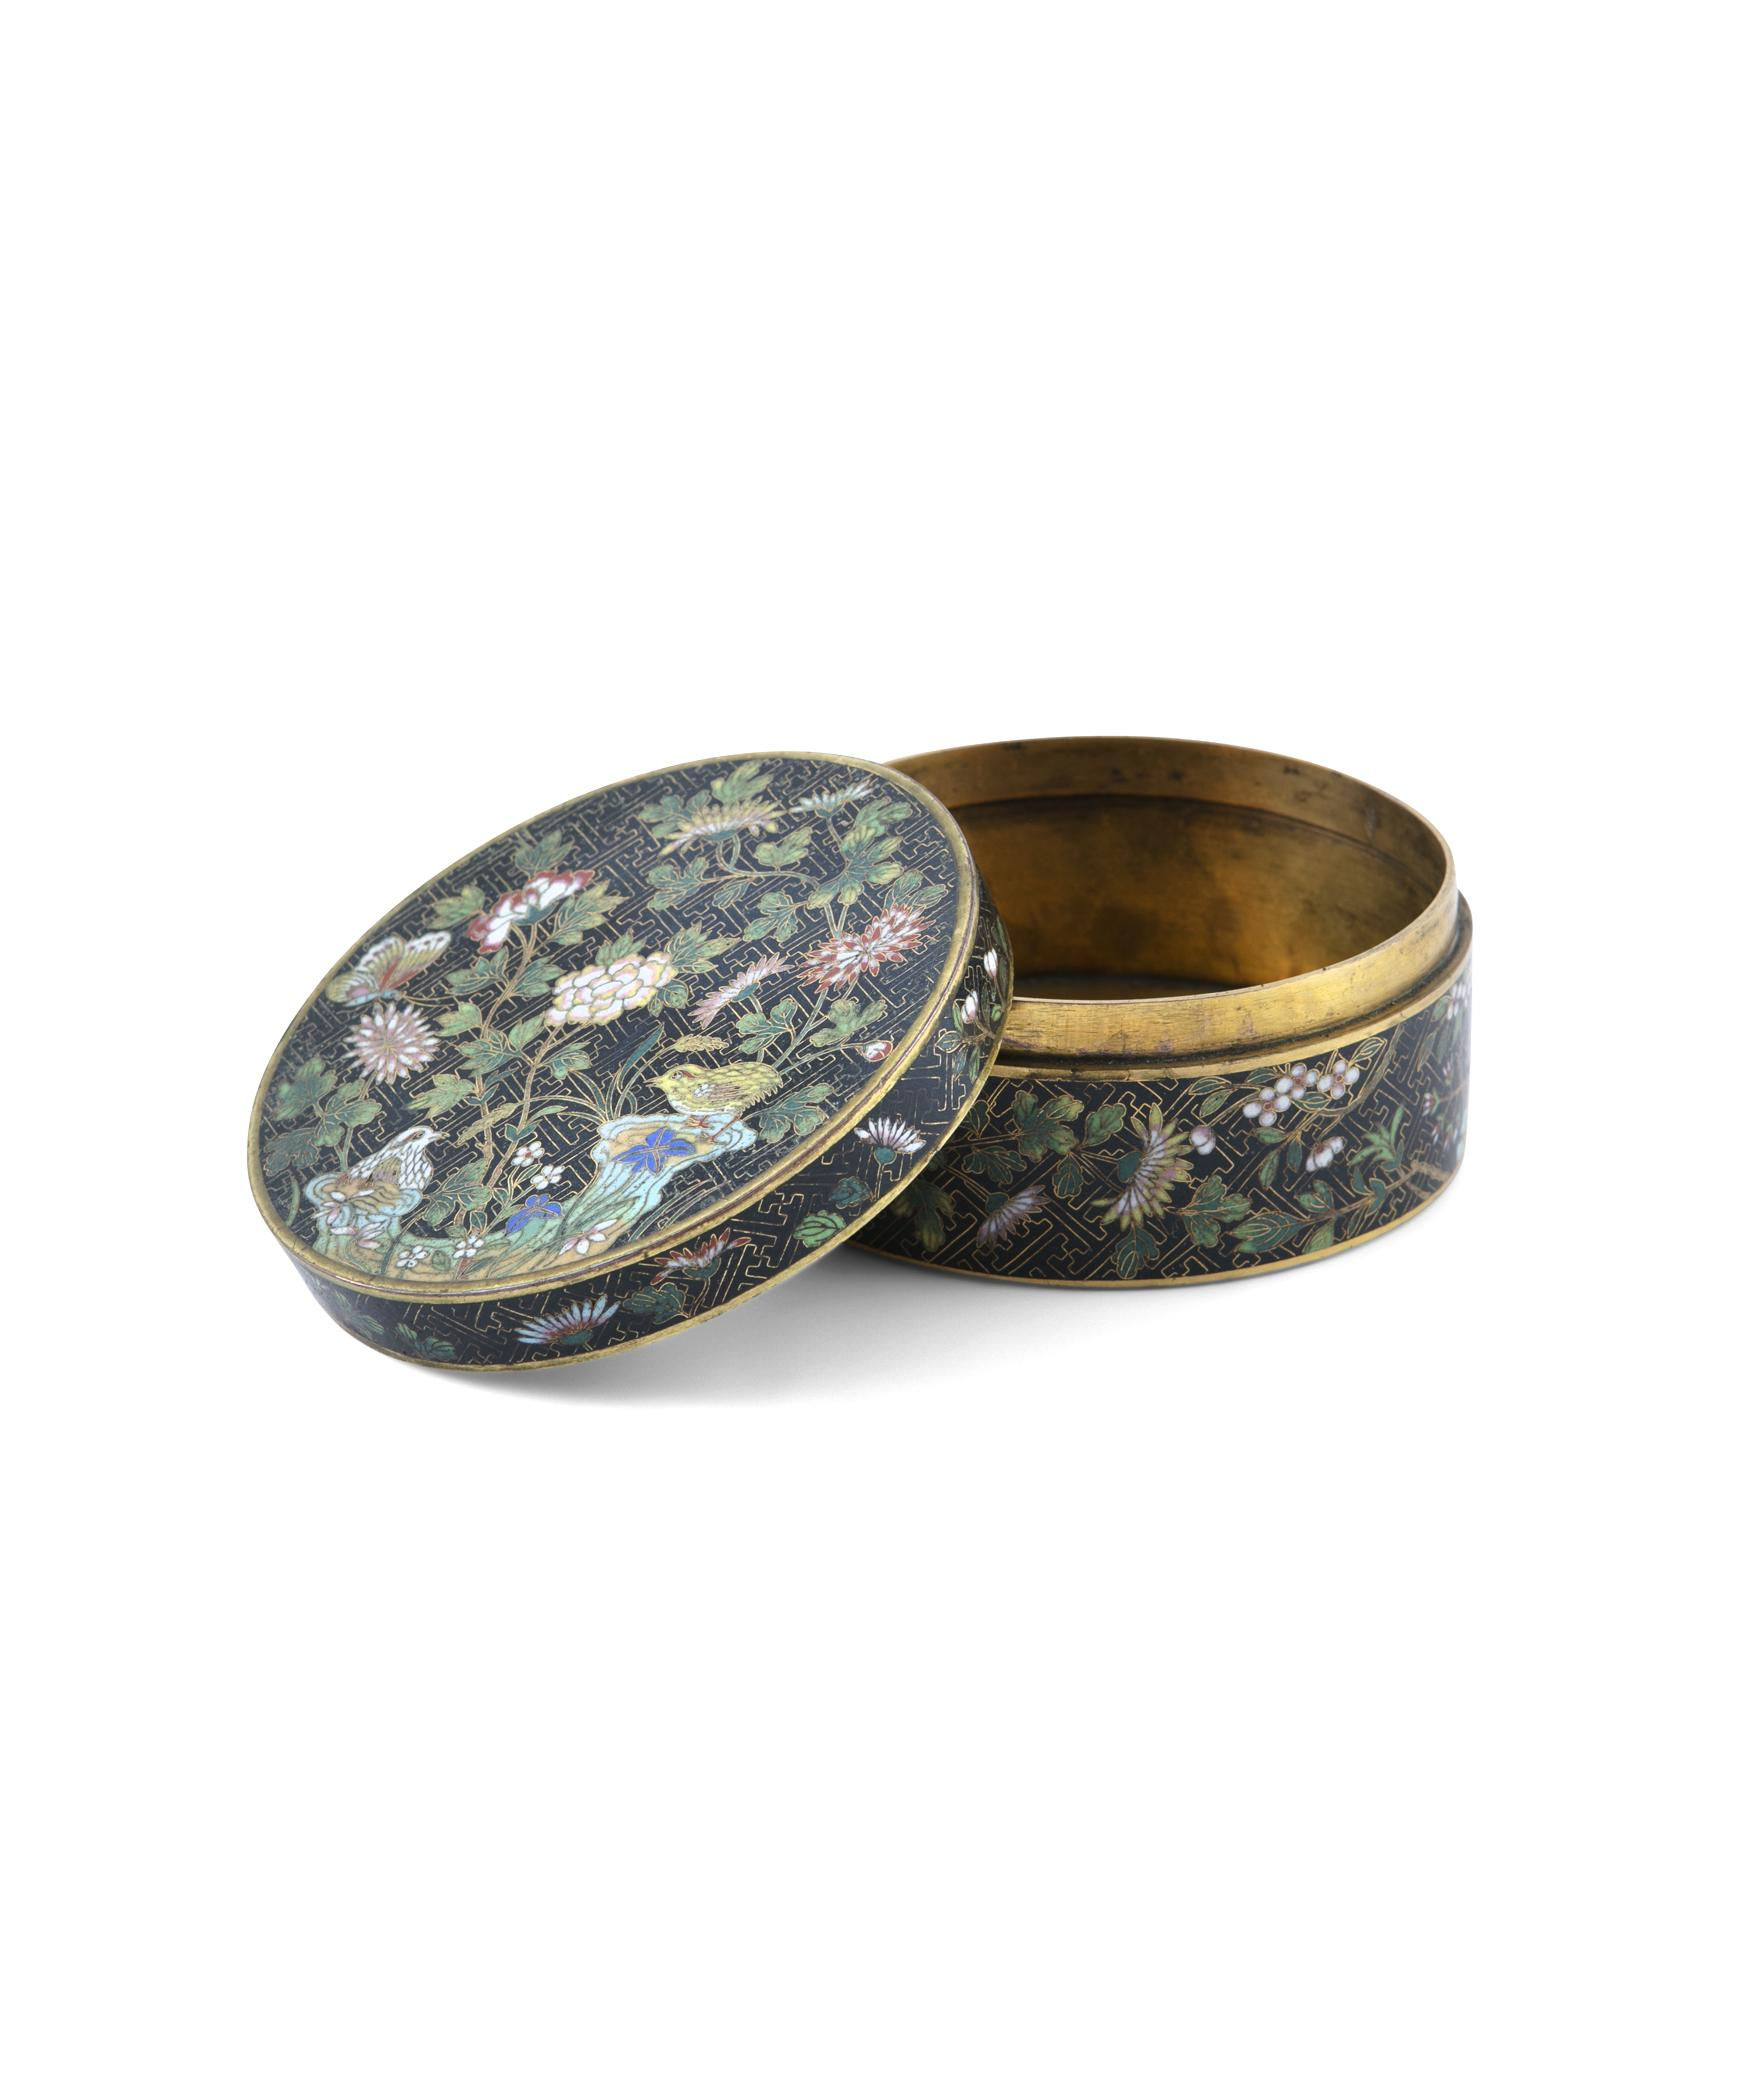 A 'FLOWER AND ROCKS' ROUND CLOISONNE BOX AND COVER China, Late Qing to Republican / Minguo period - Image 31 of 36